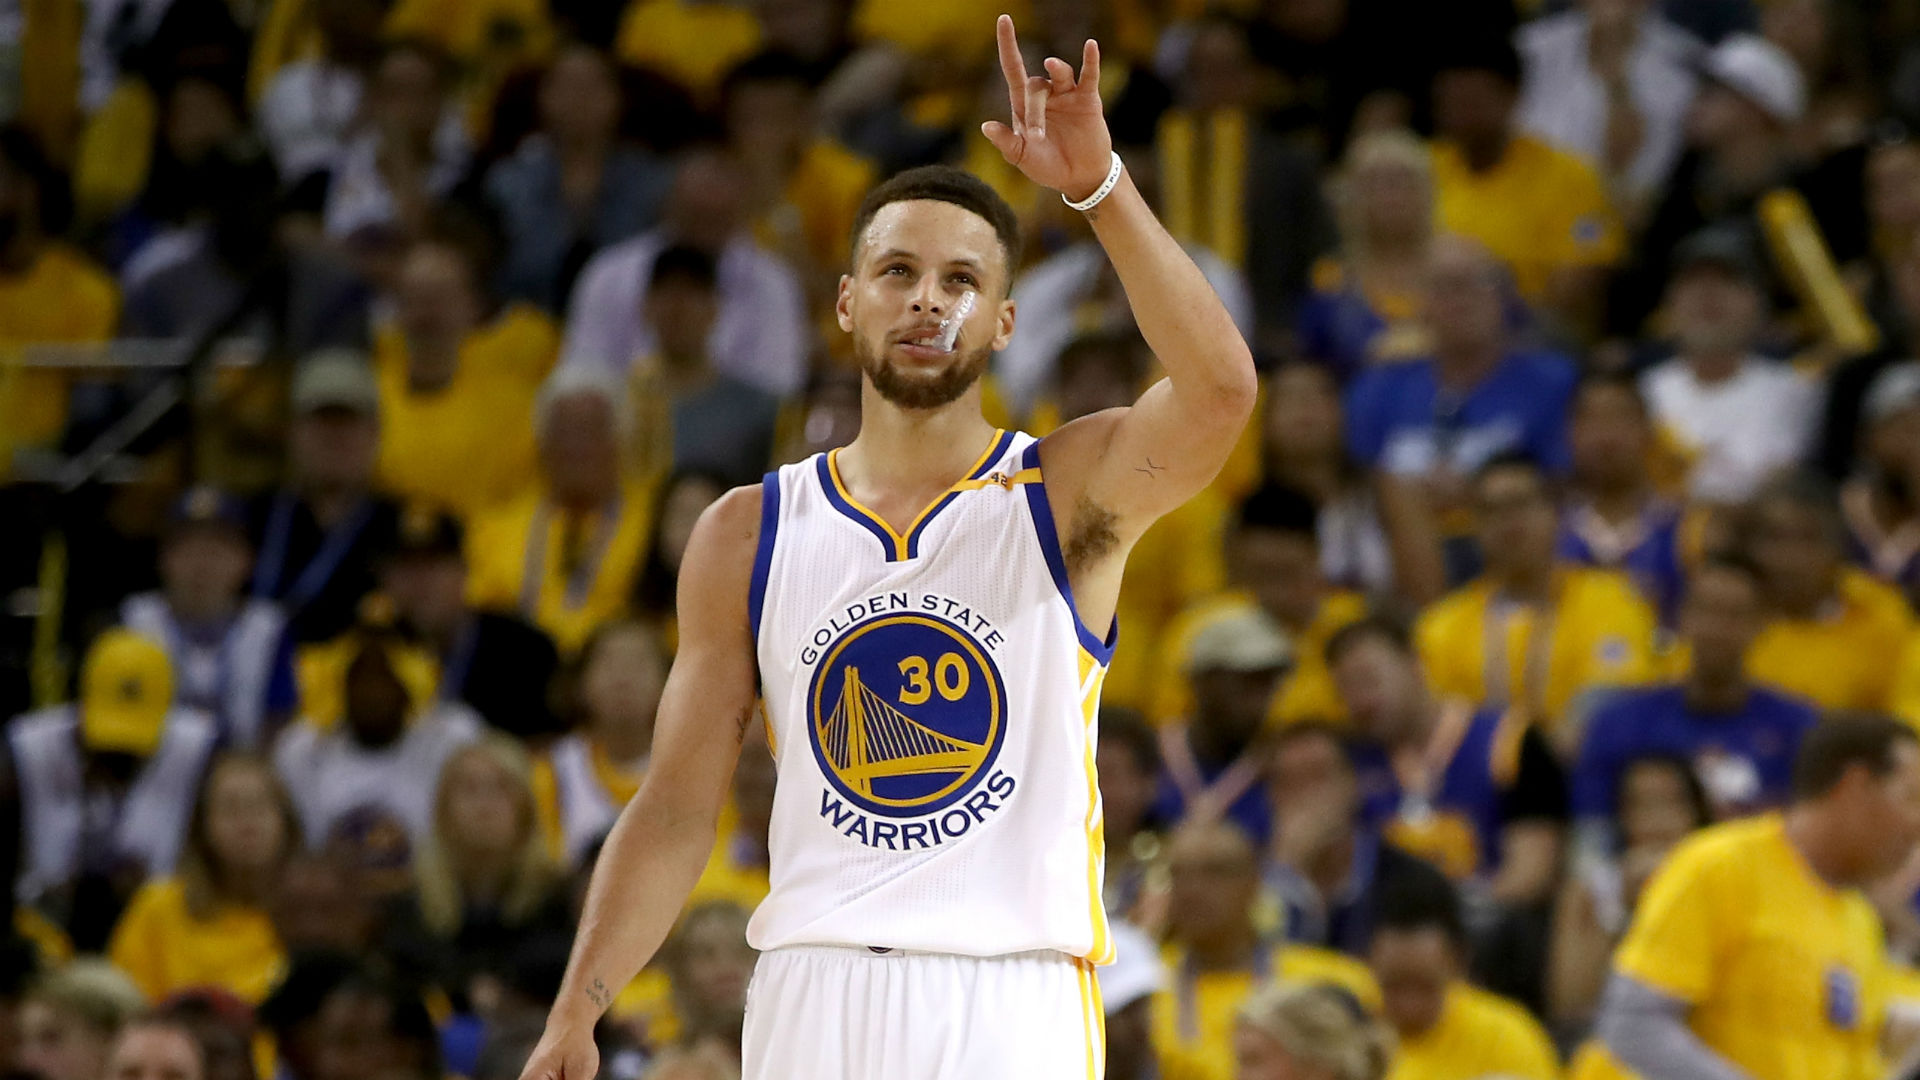 Curry leads Golden State to big win over Dallas Mavericks